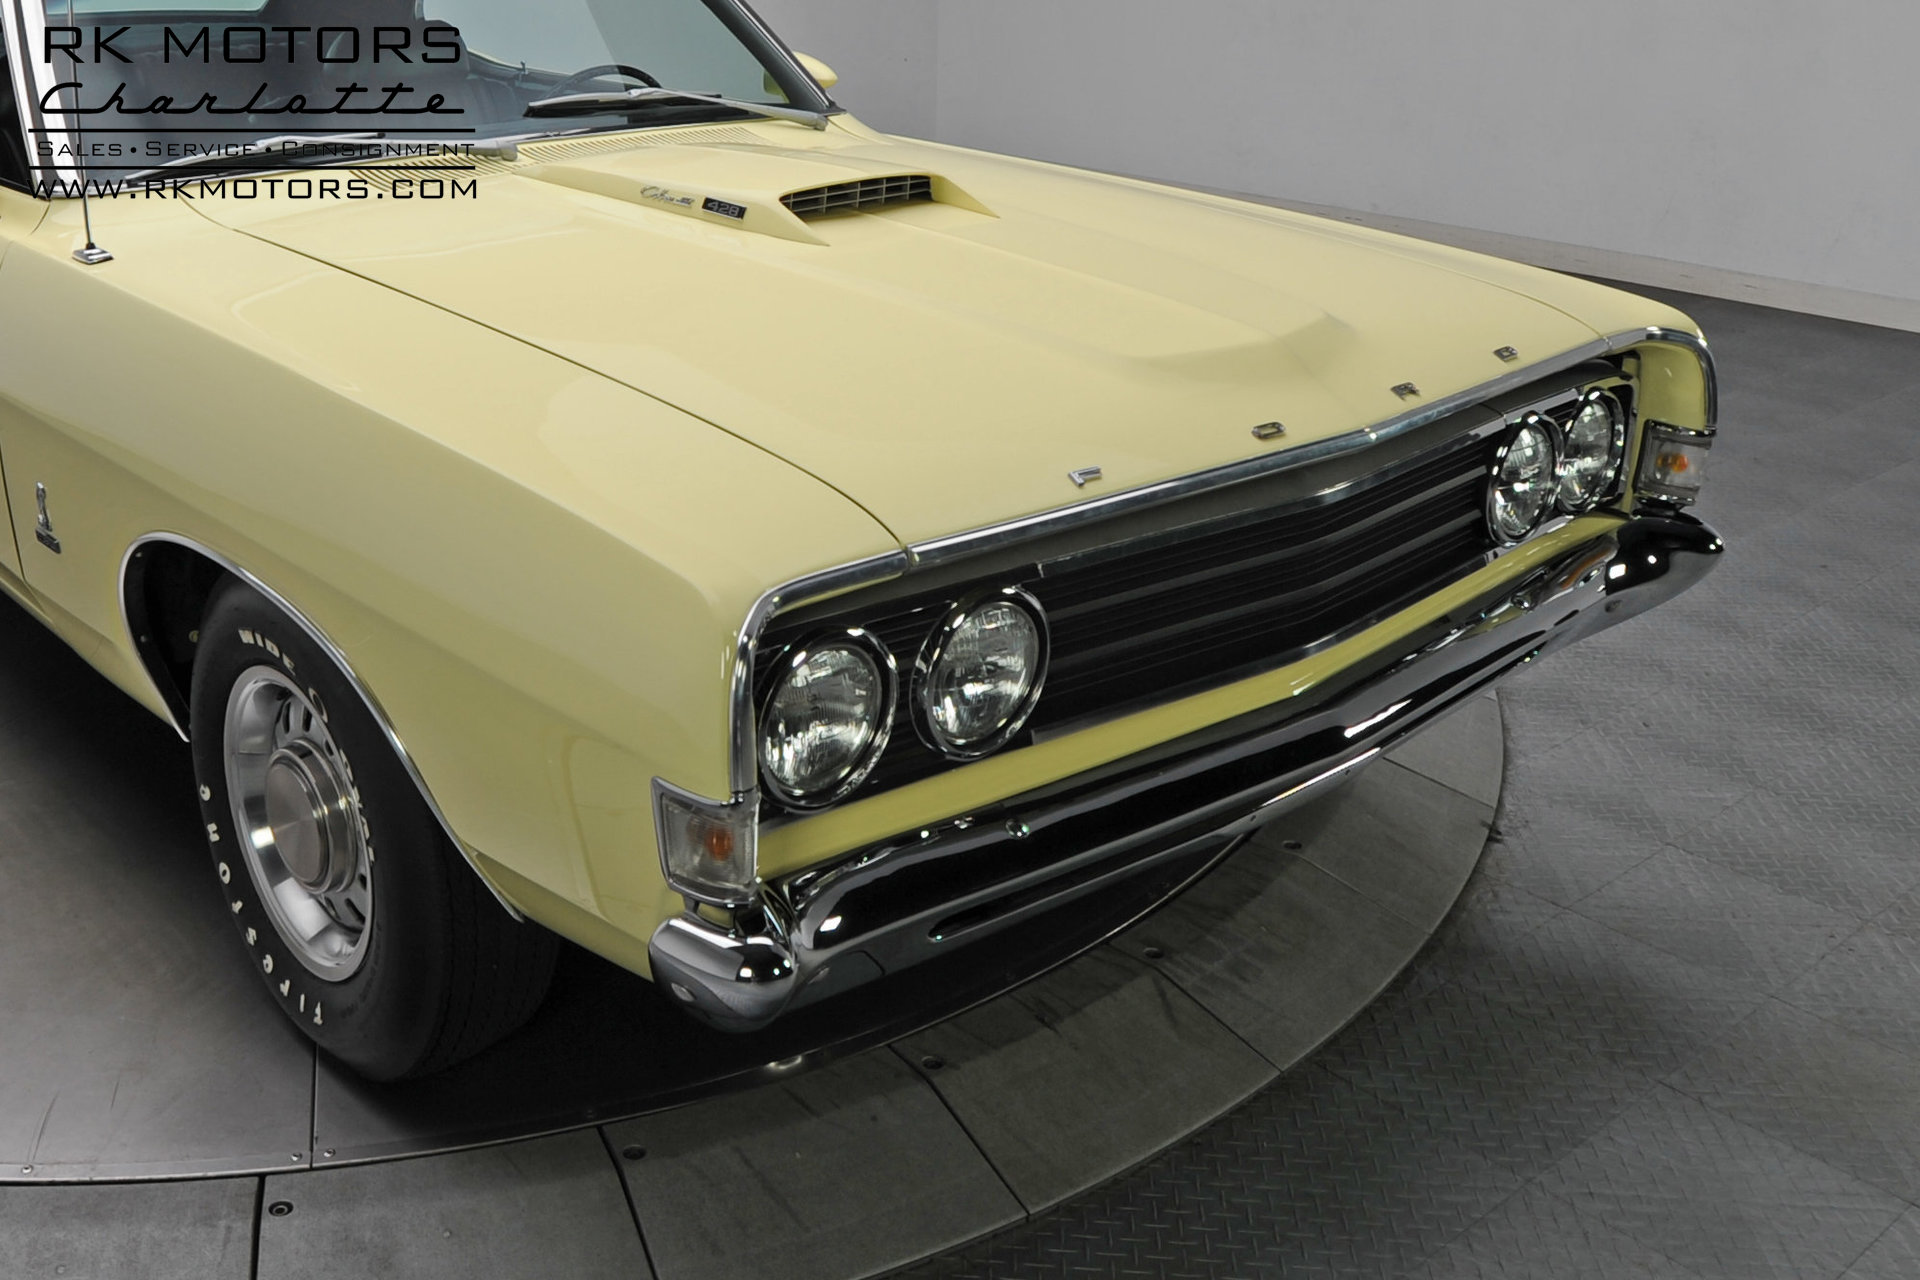 133121 1969 Ford Torino Rk Motors Classic And Performance Cars For Gt Convertible Sale